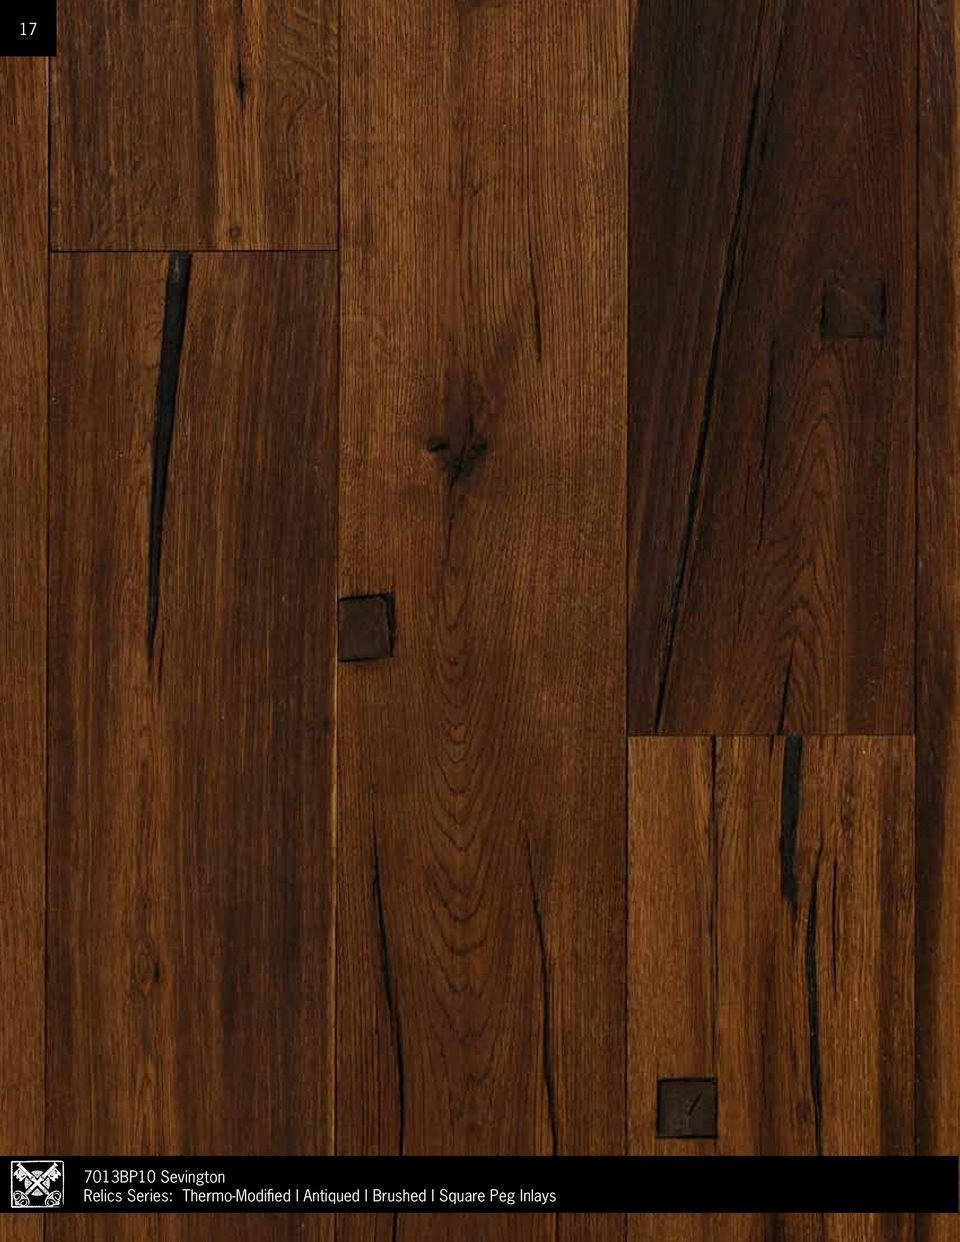 oak hardwood flooring with pegs of make any home a castle pdf with thermo modified